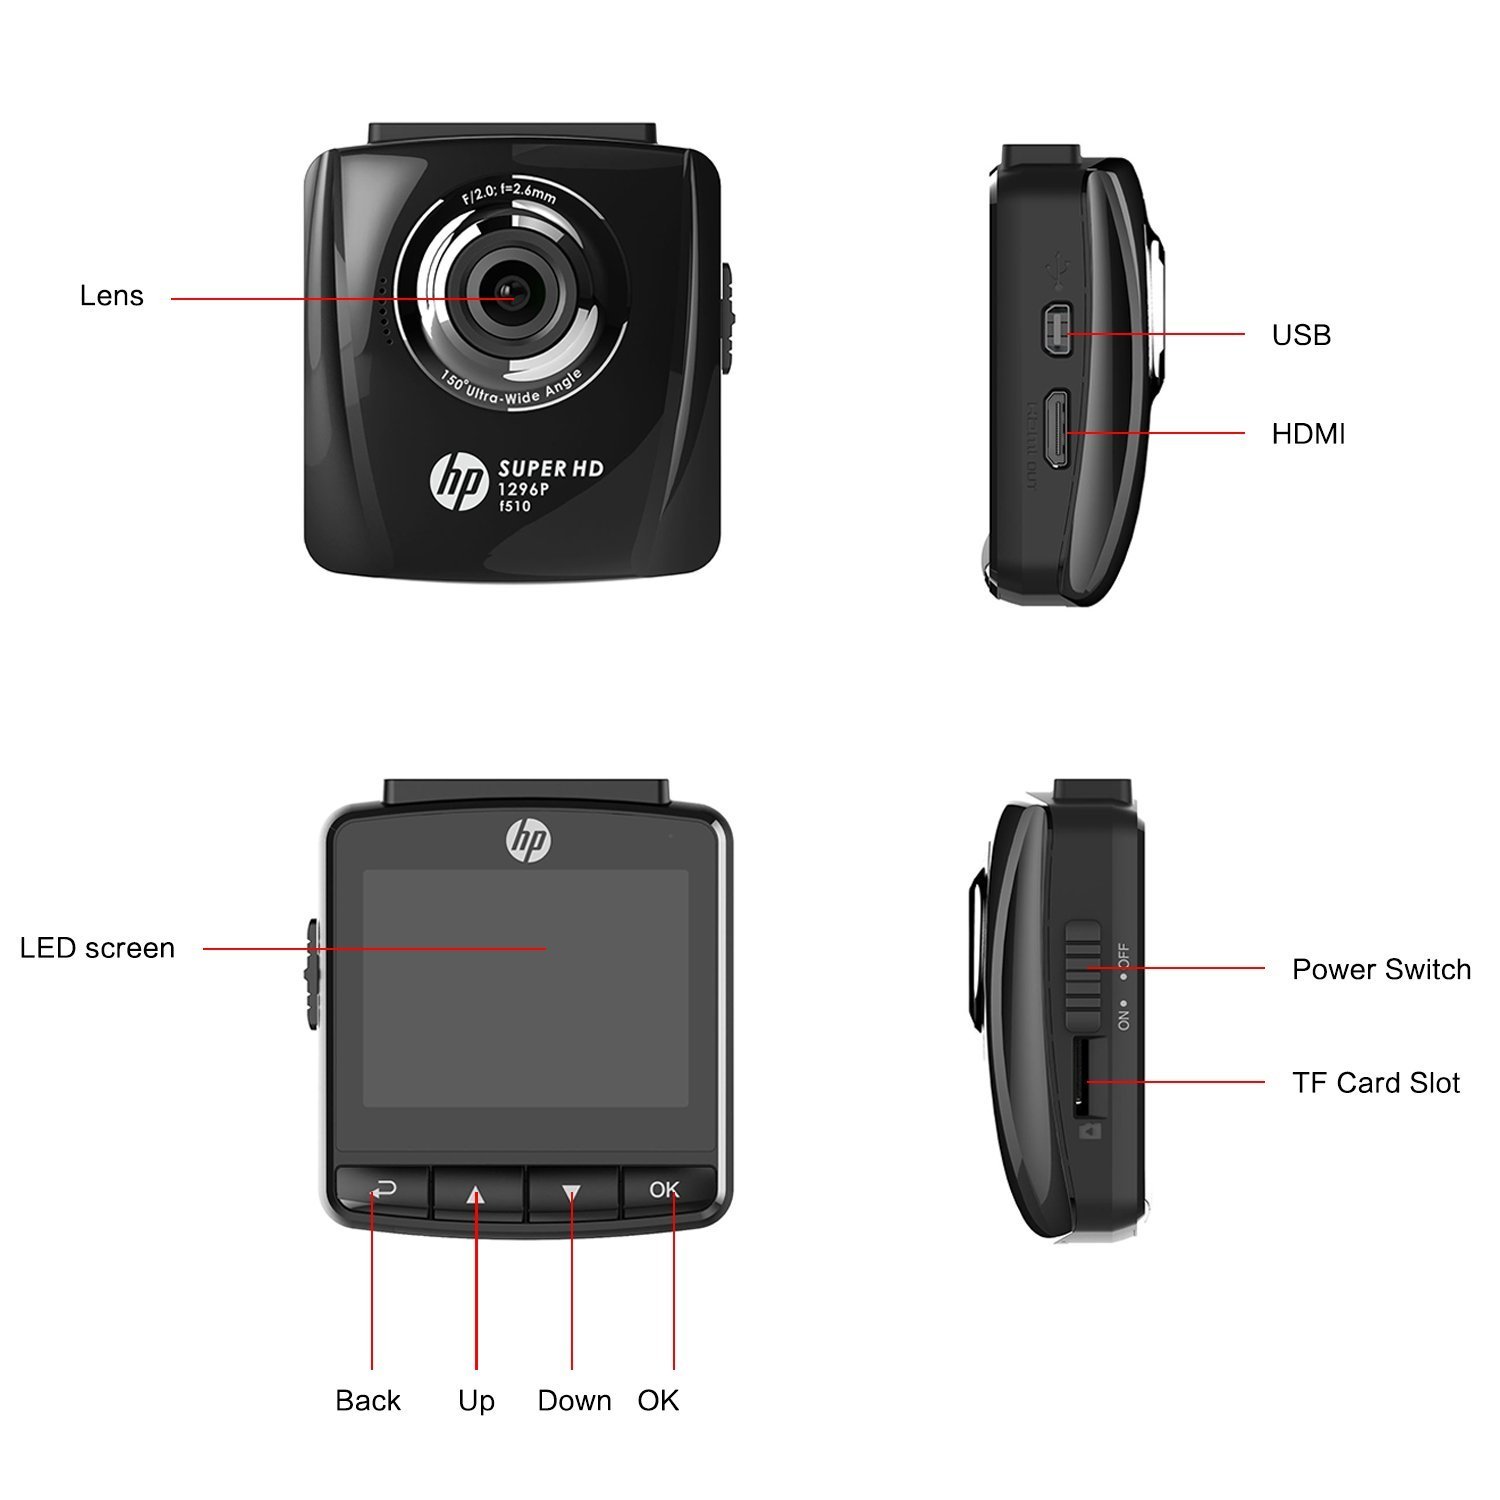 HP Super HD 1296p In Car Dash Cam Camera DVR Digital Driving Video Recorder High Definition 2304x1296 Pixels Resolution Increased by 44% Compared with 1080p 6